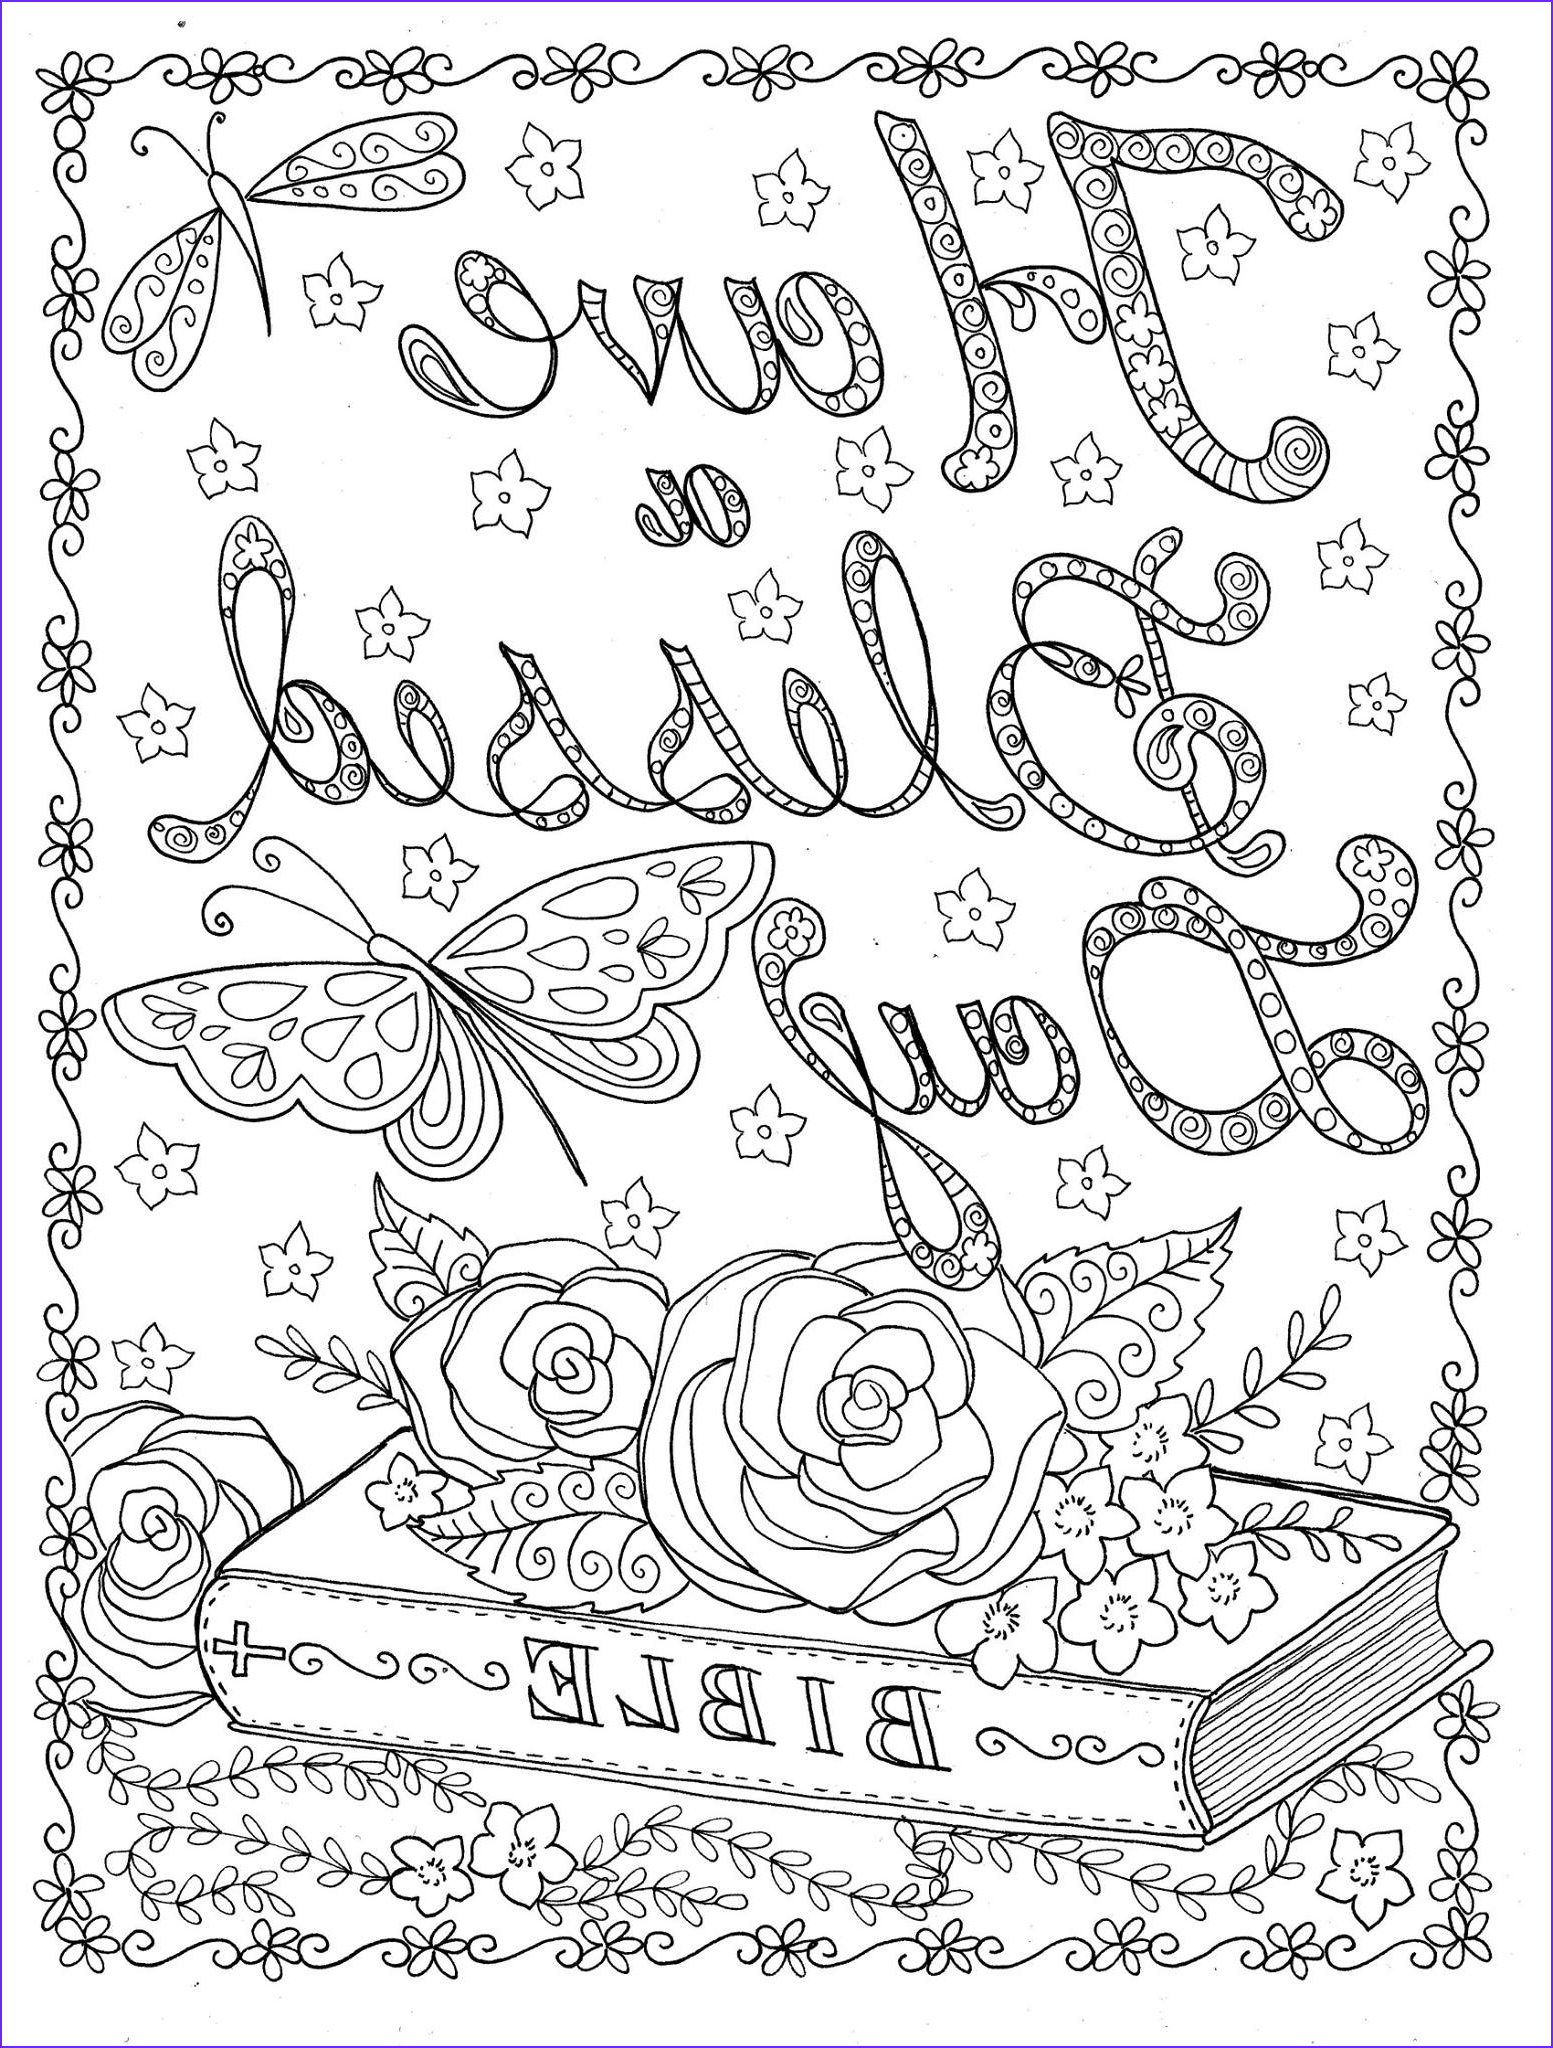 Coloring Images for Adults Unique Image Free Printable Abstract Coloring Pages for Adults